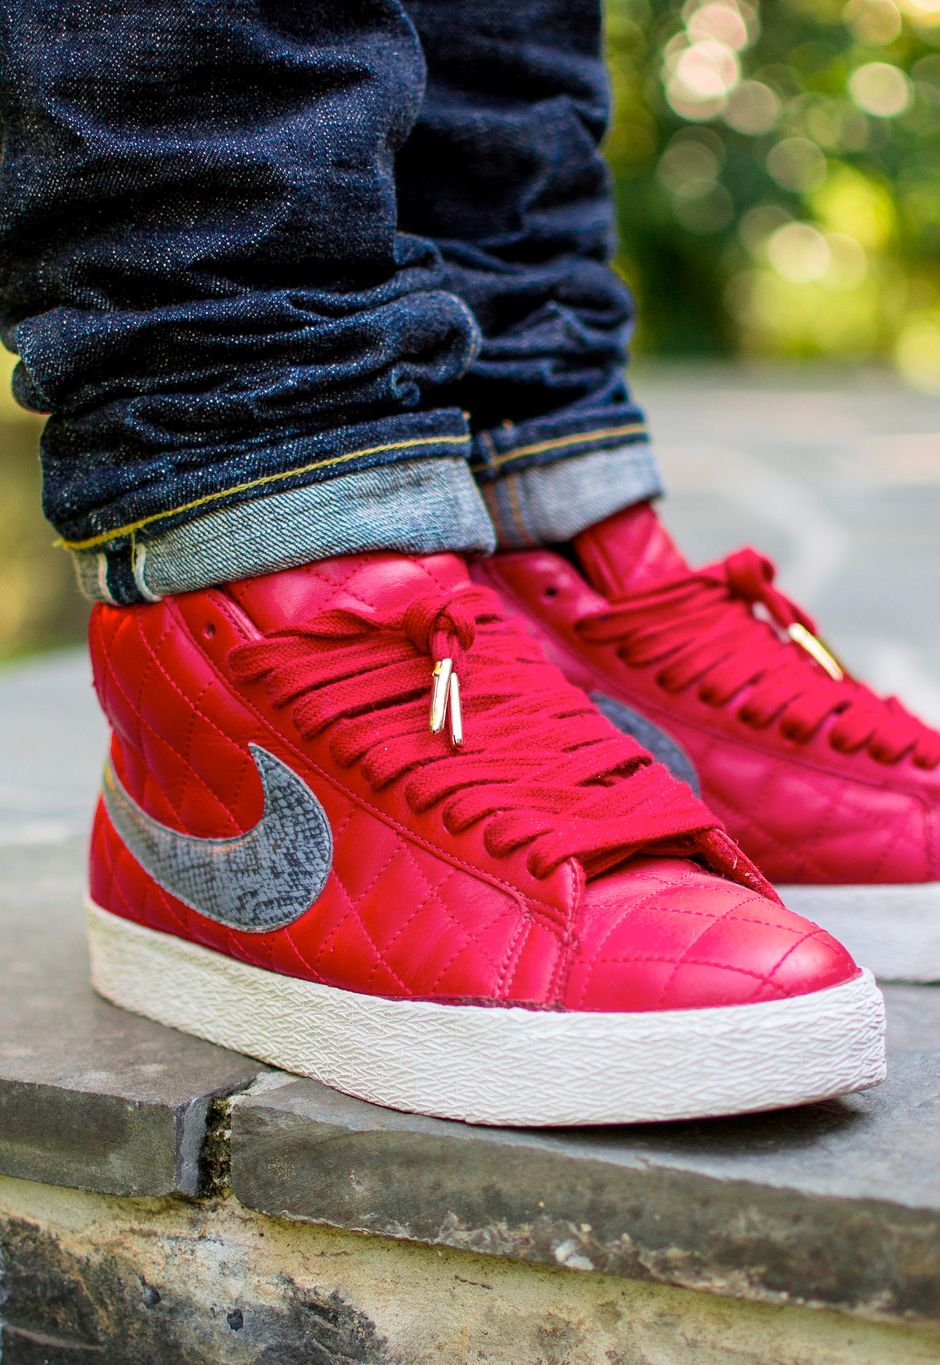 low priced b8d7a c3c26 Nike SB Blazer 'Supreme' Red (by OliverWeiss13) – Sweetsoles – Sneakers,  kicks and trainers. On feet. Ғollow мy pιnтreѕт: @мarqυιѕнa✨вrιce